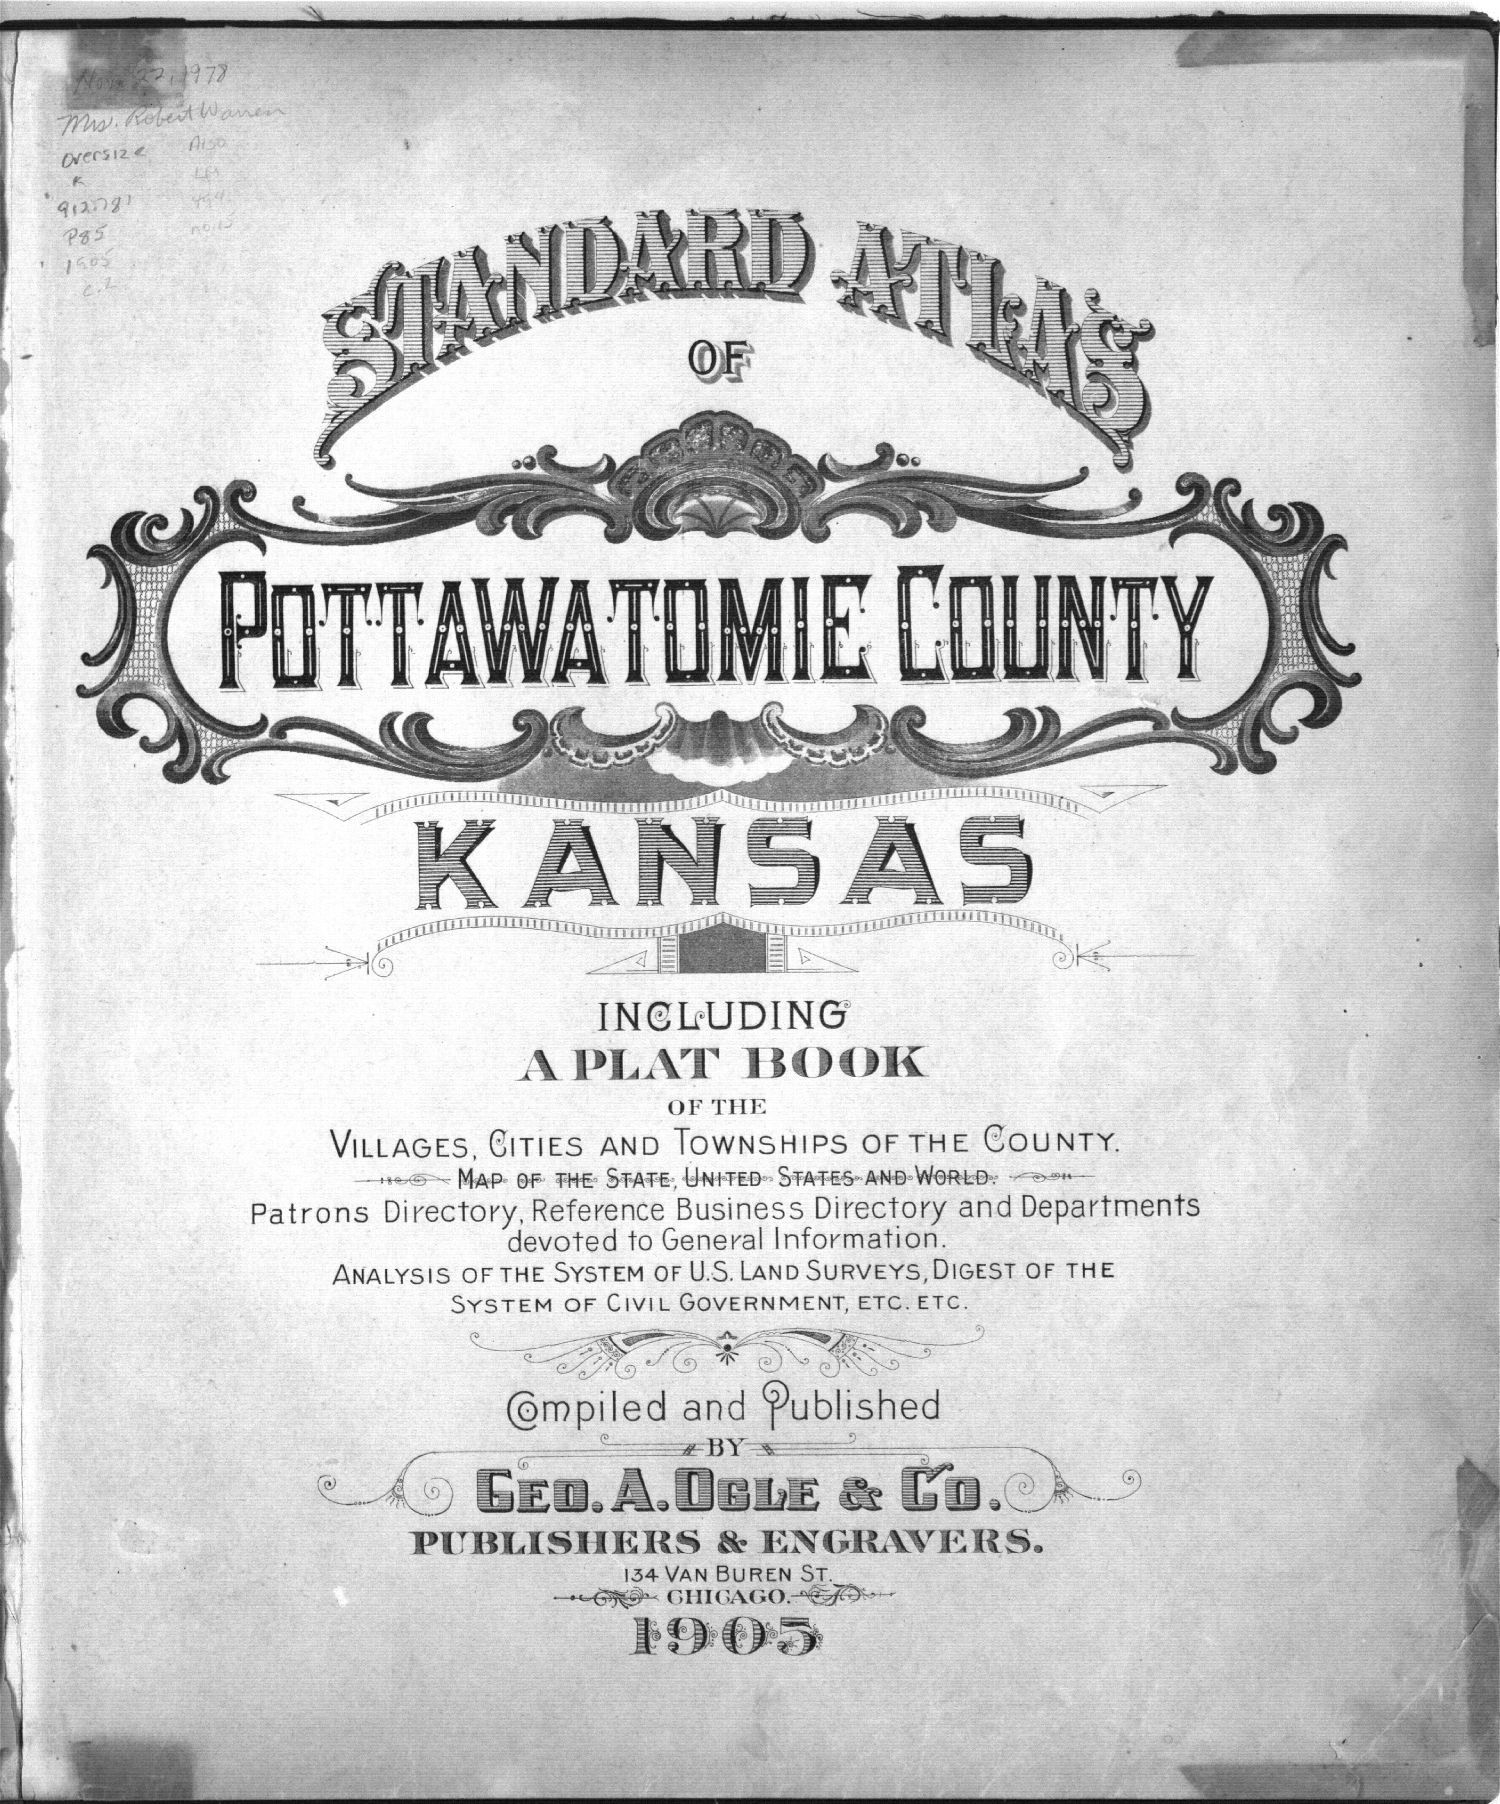 Standard atlas of Pottawatomie County, Kansas - Title Page